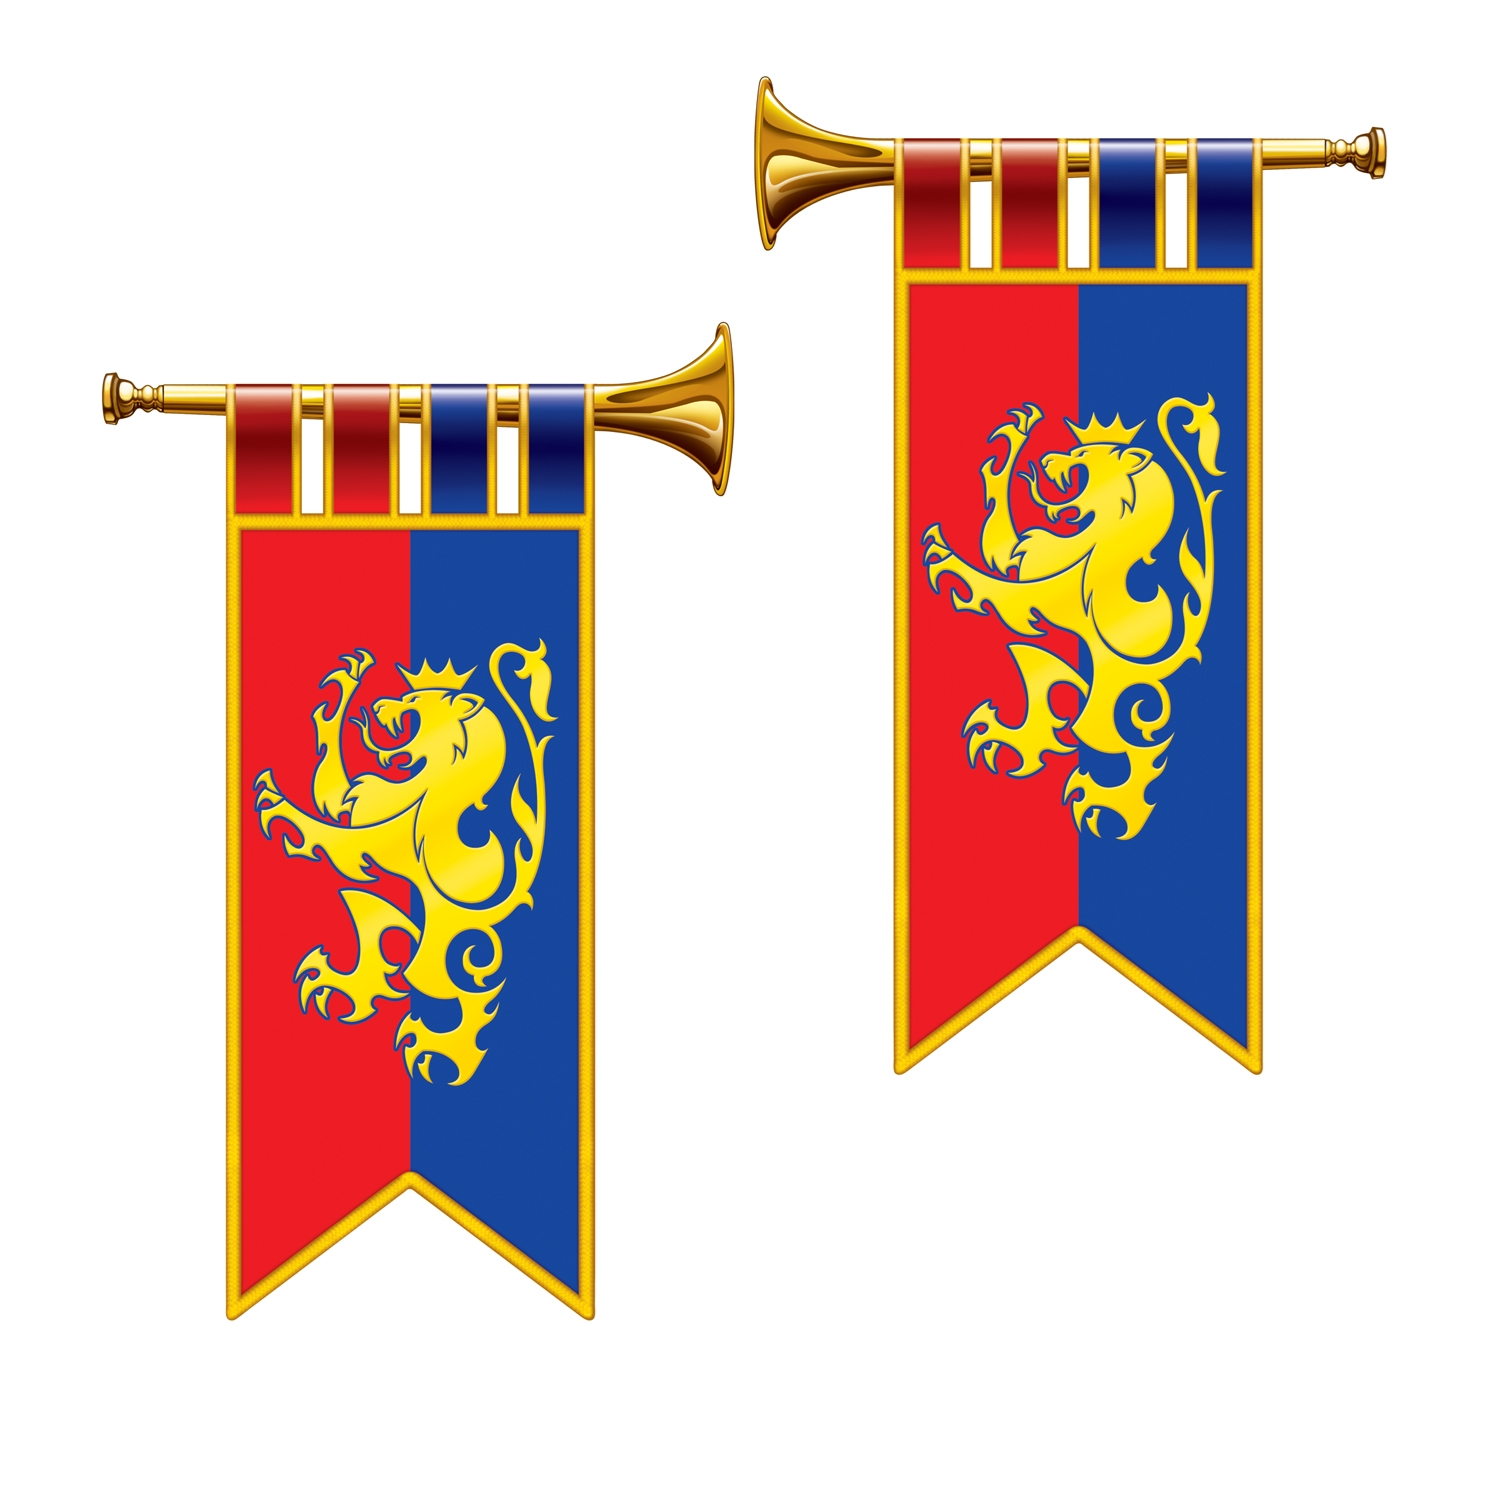 Herald Trumpet Cutouts (Pack of 24) Herald Trumpet Cutouts, decoration, medieval, trumpet, new years eve, wholesale, inexpensive, bulk